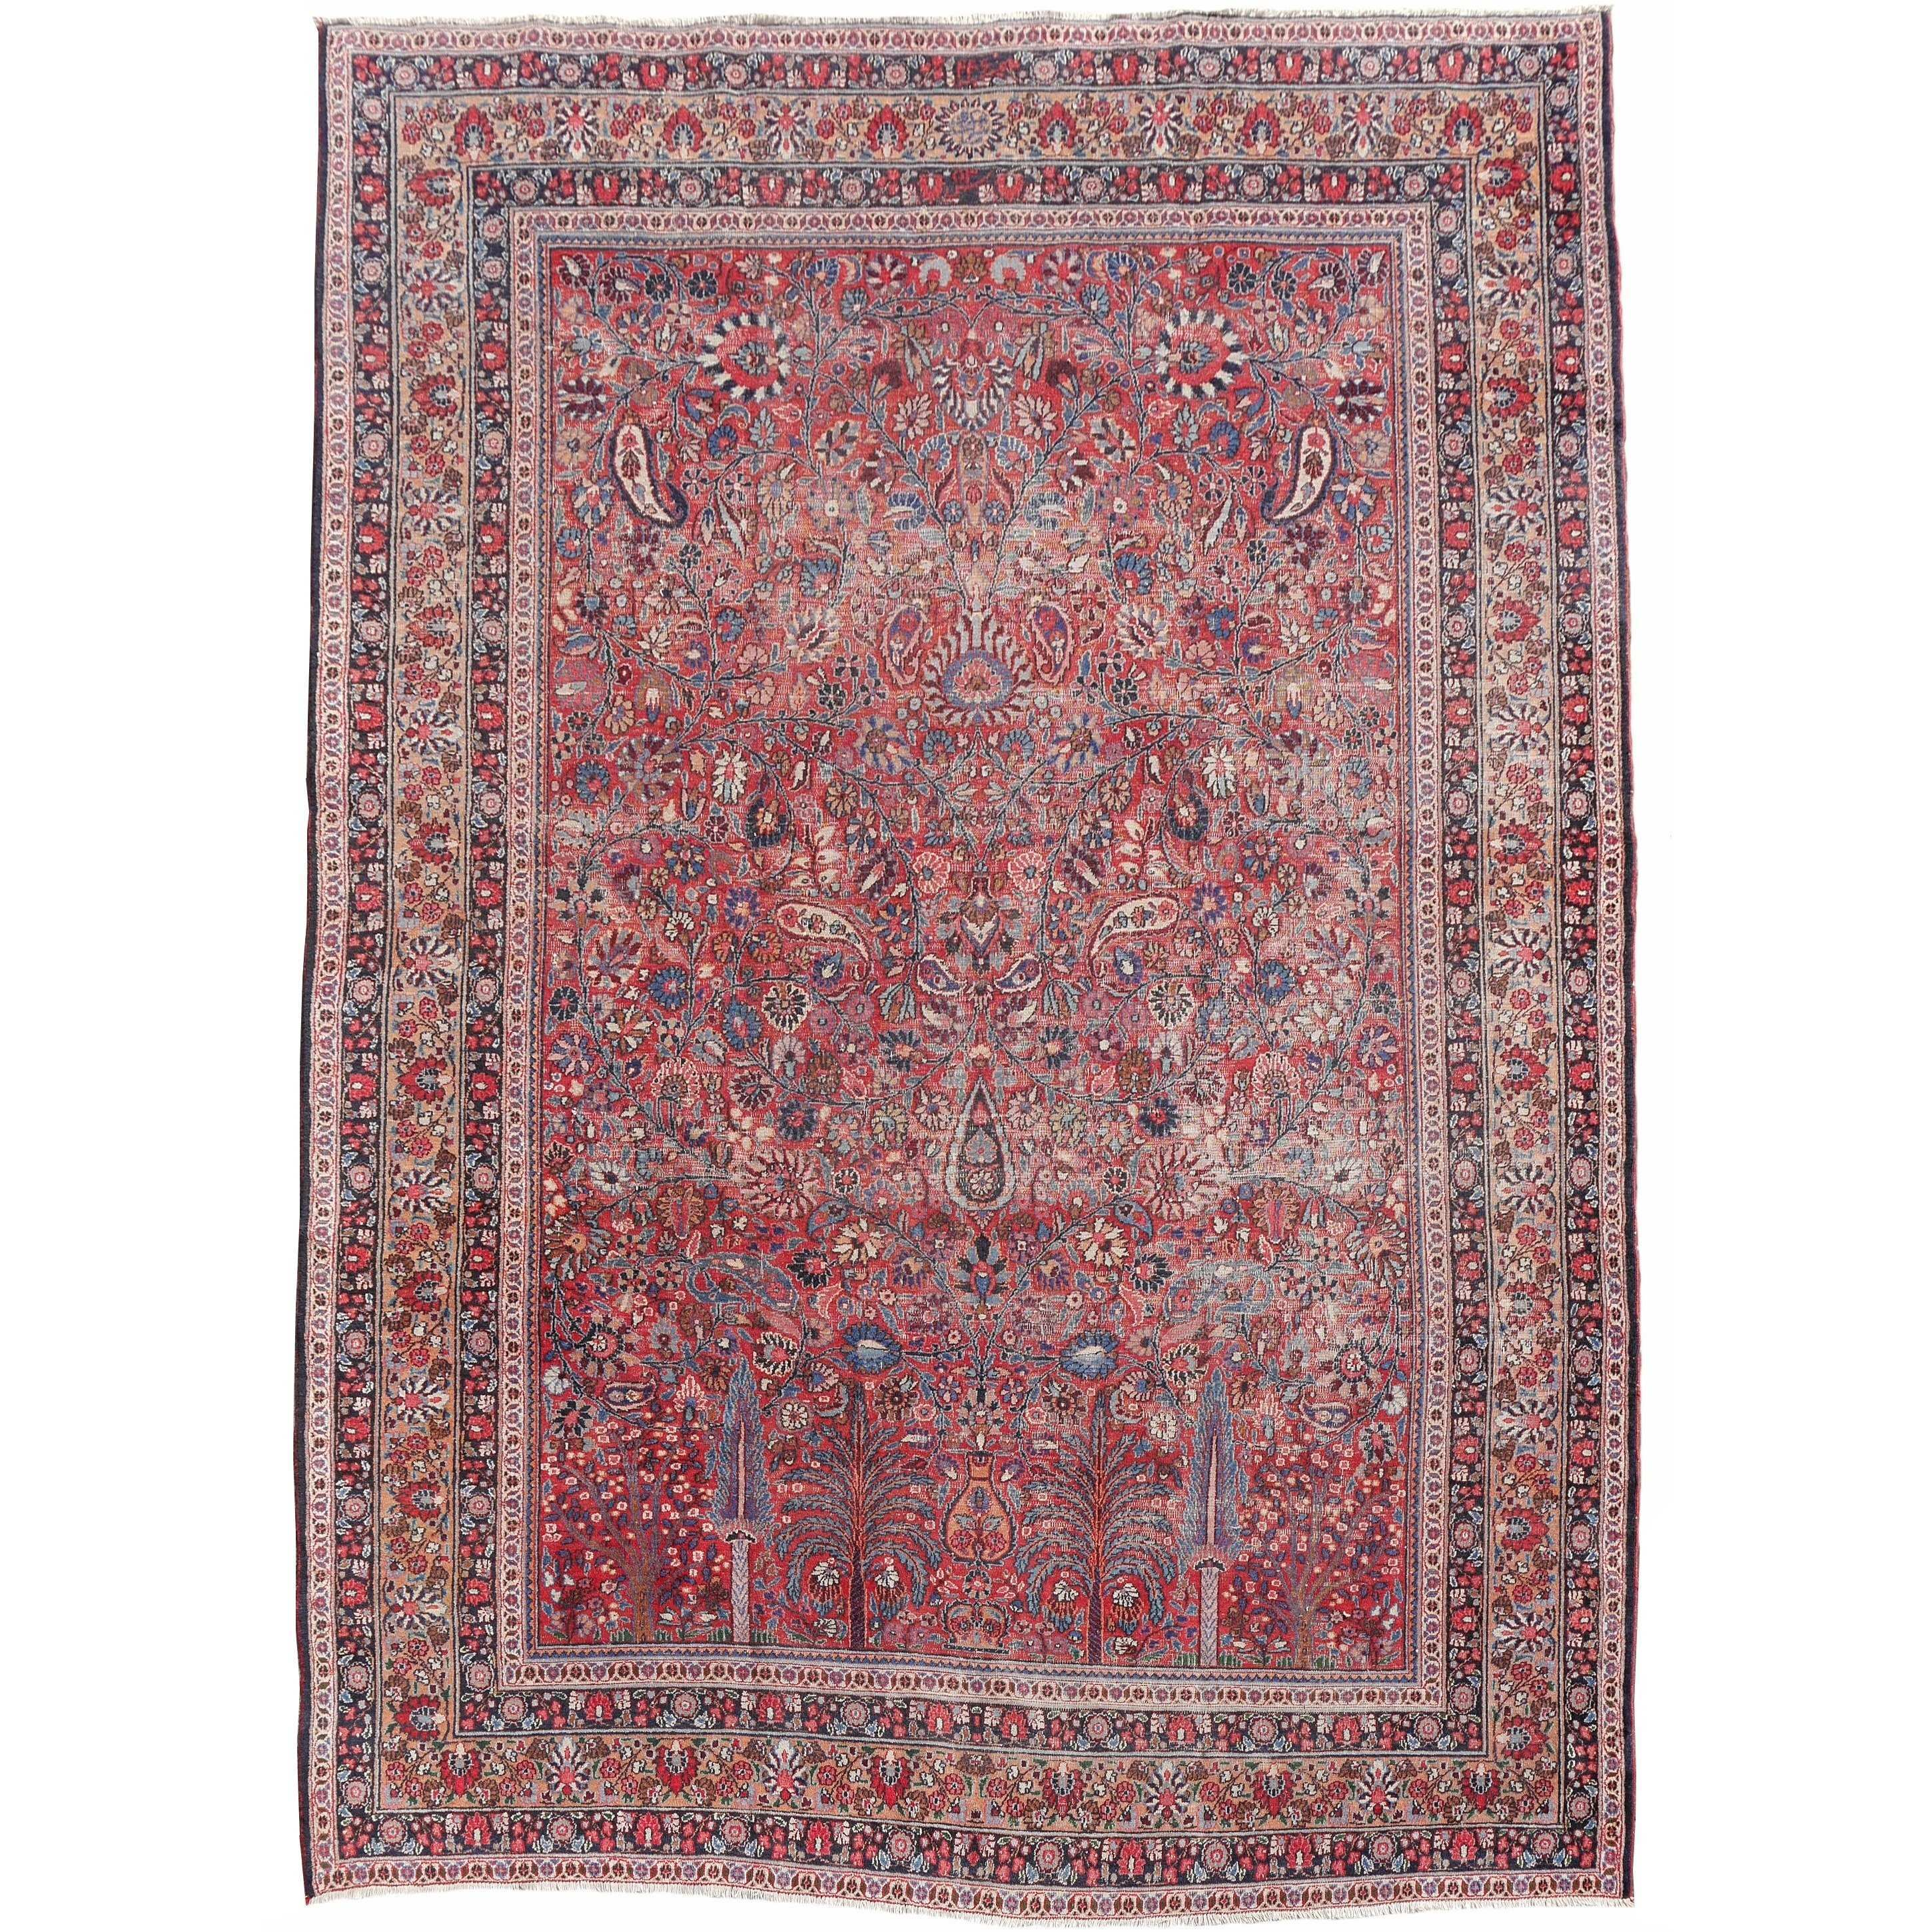 Leopard Print Wall to Wall Carpet Fresh Garden Of Paradise Antique Persian Carpet at 1stdibs